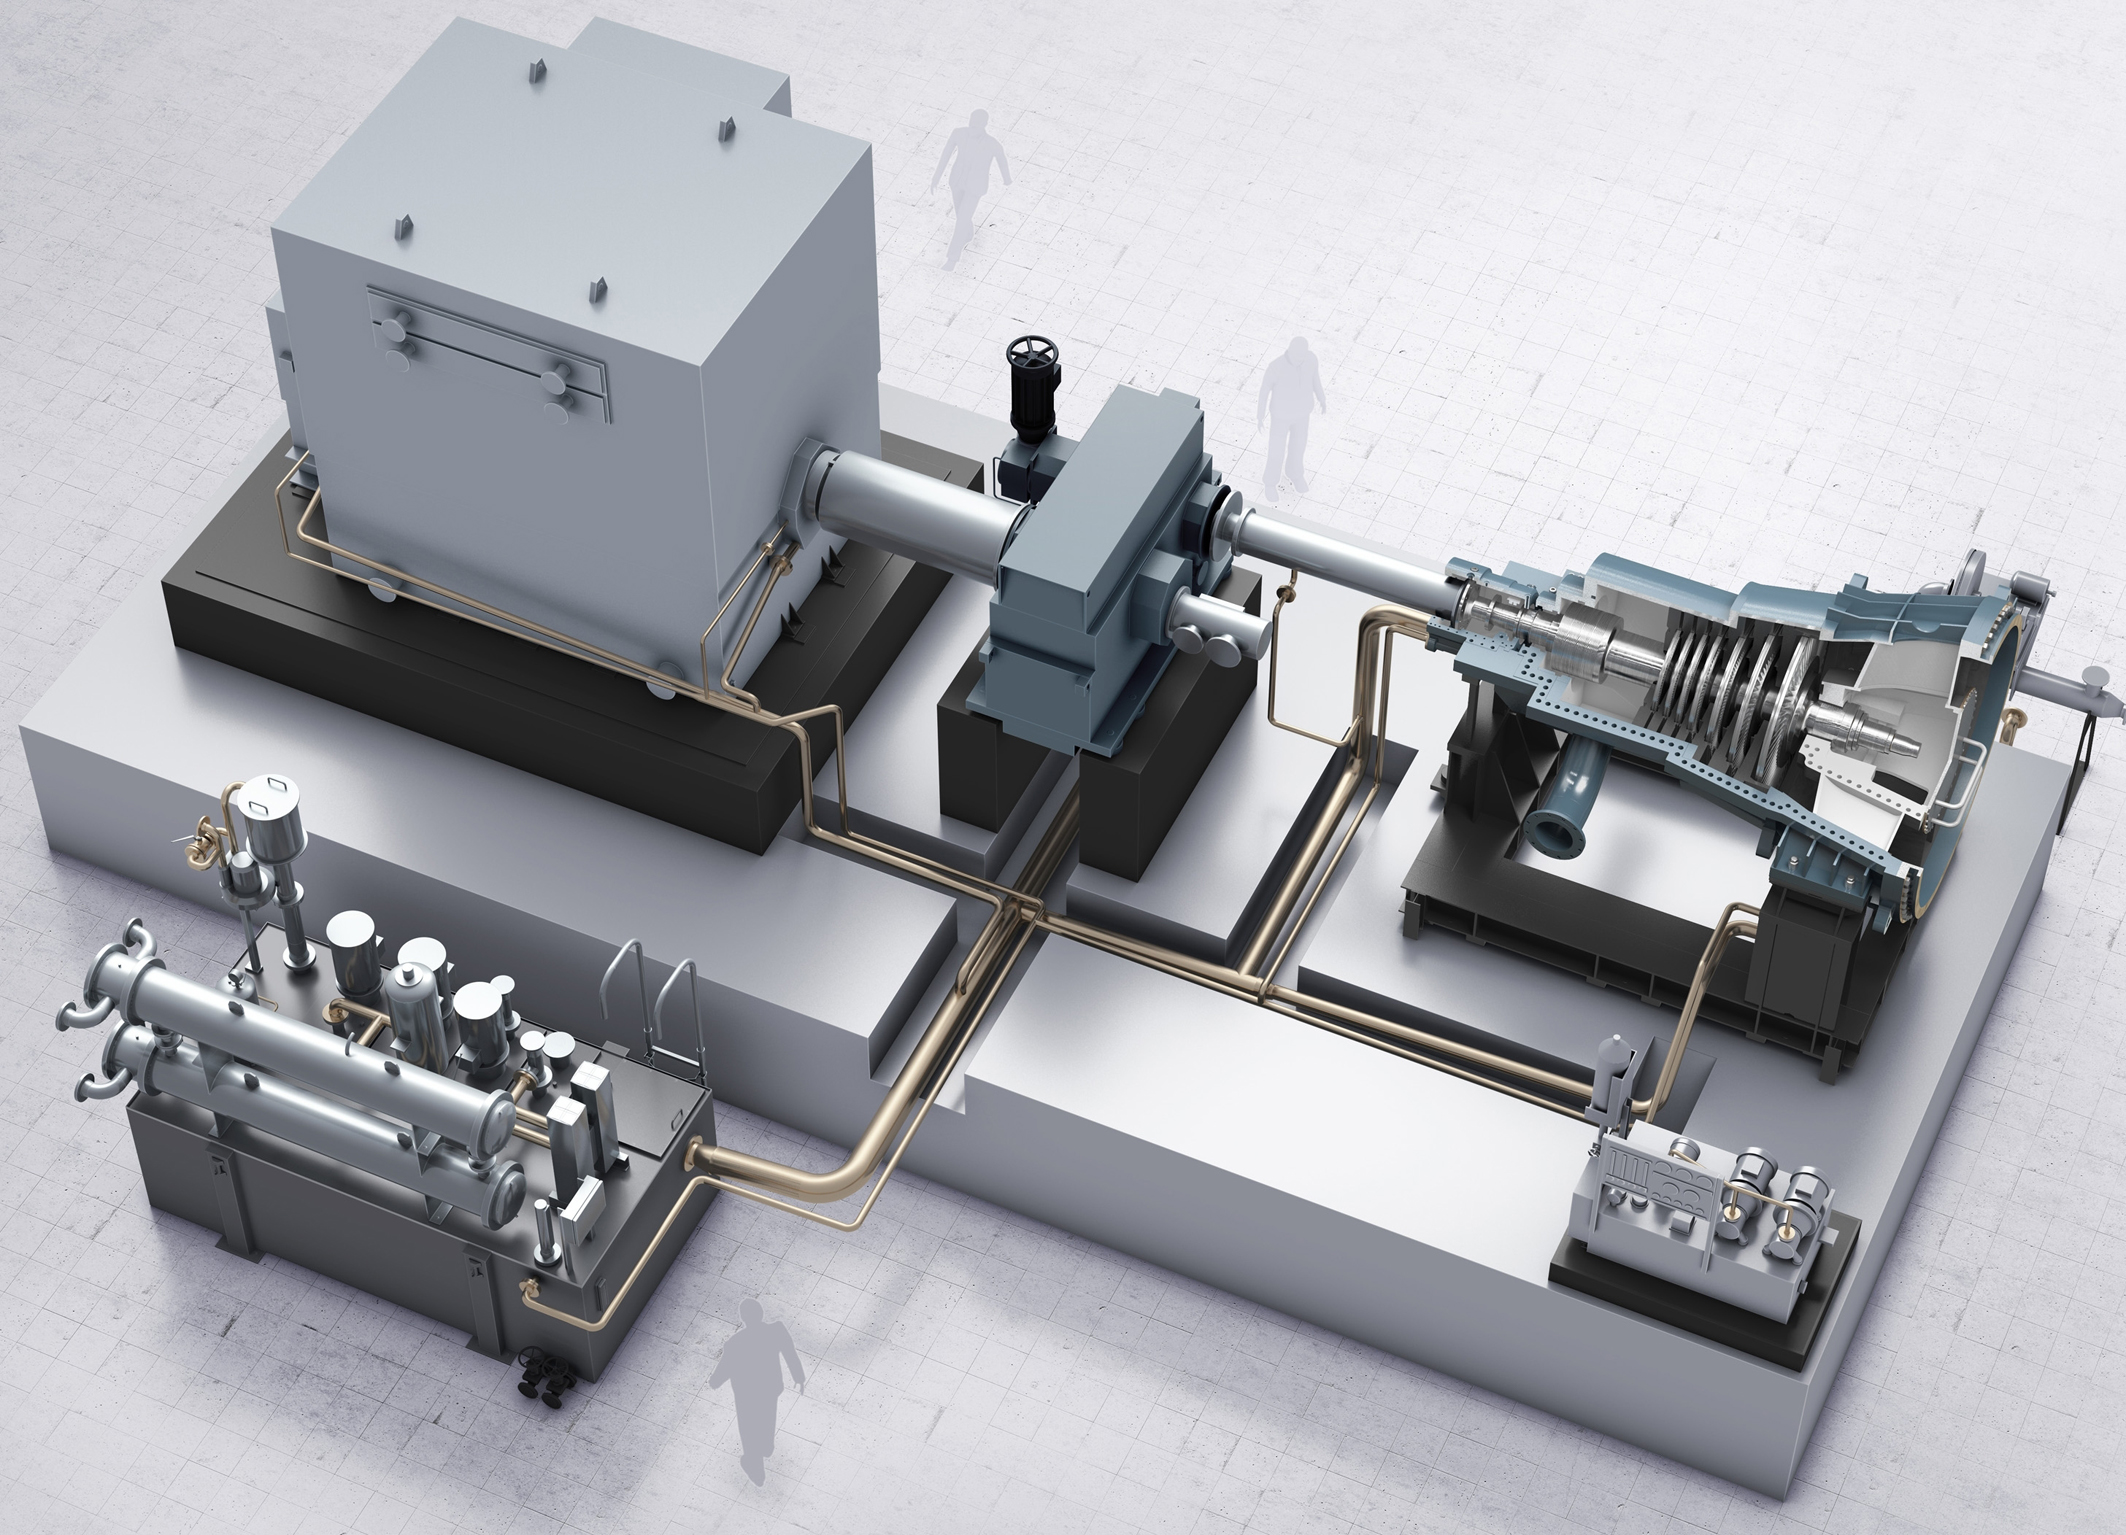 Siemens enters steam turbine market for geothermal power projects